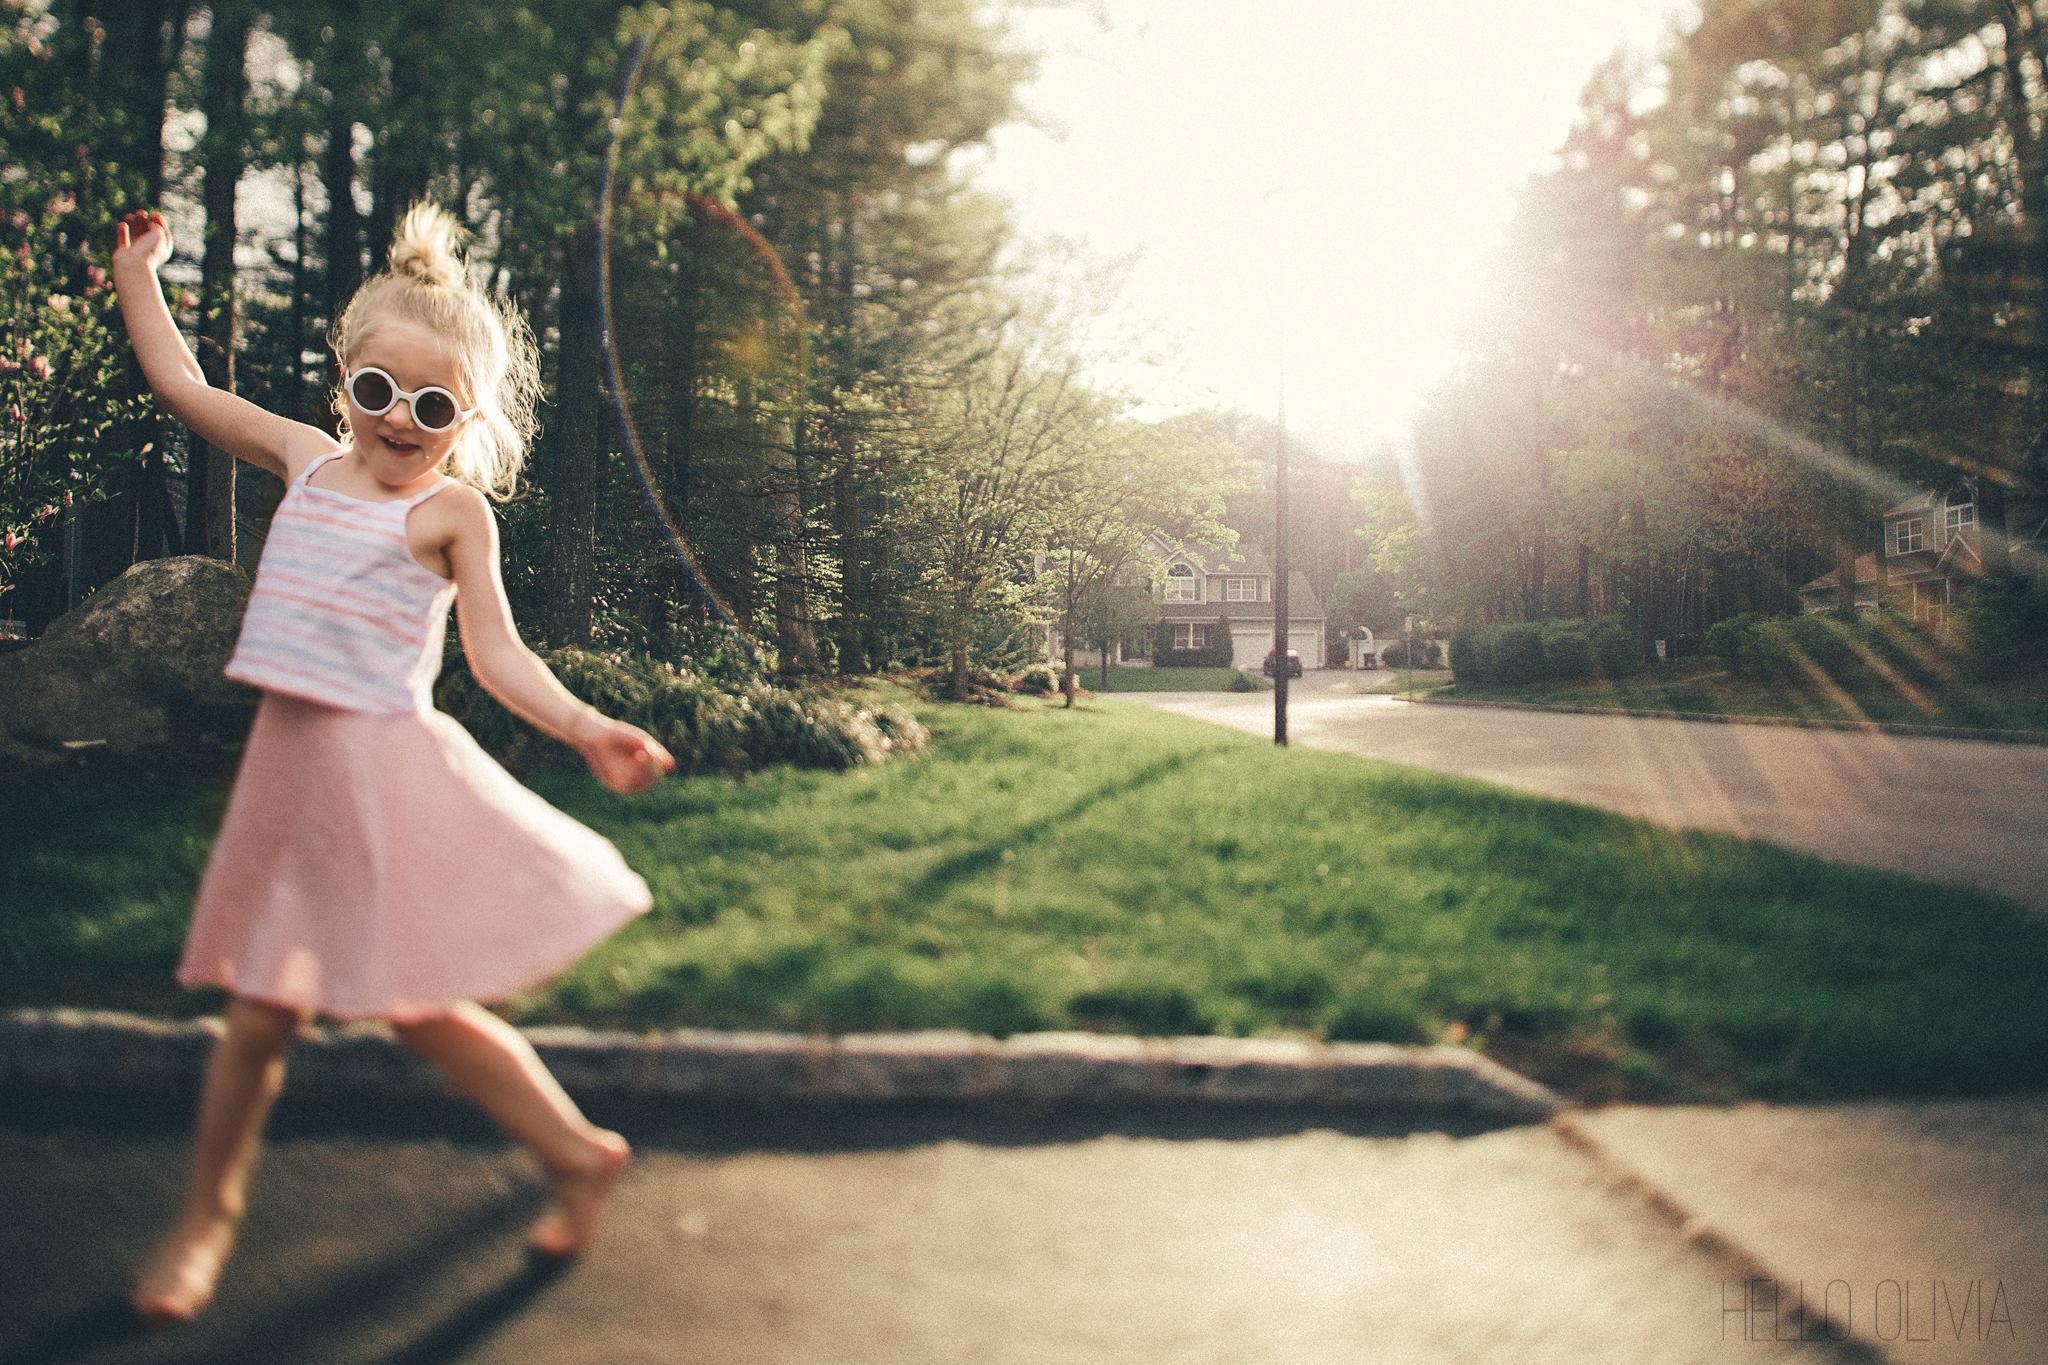 hello-olivia-photography-long-island-family-photographer-in-the-driveway